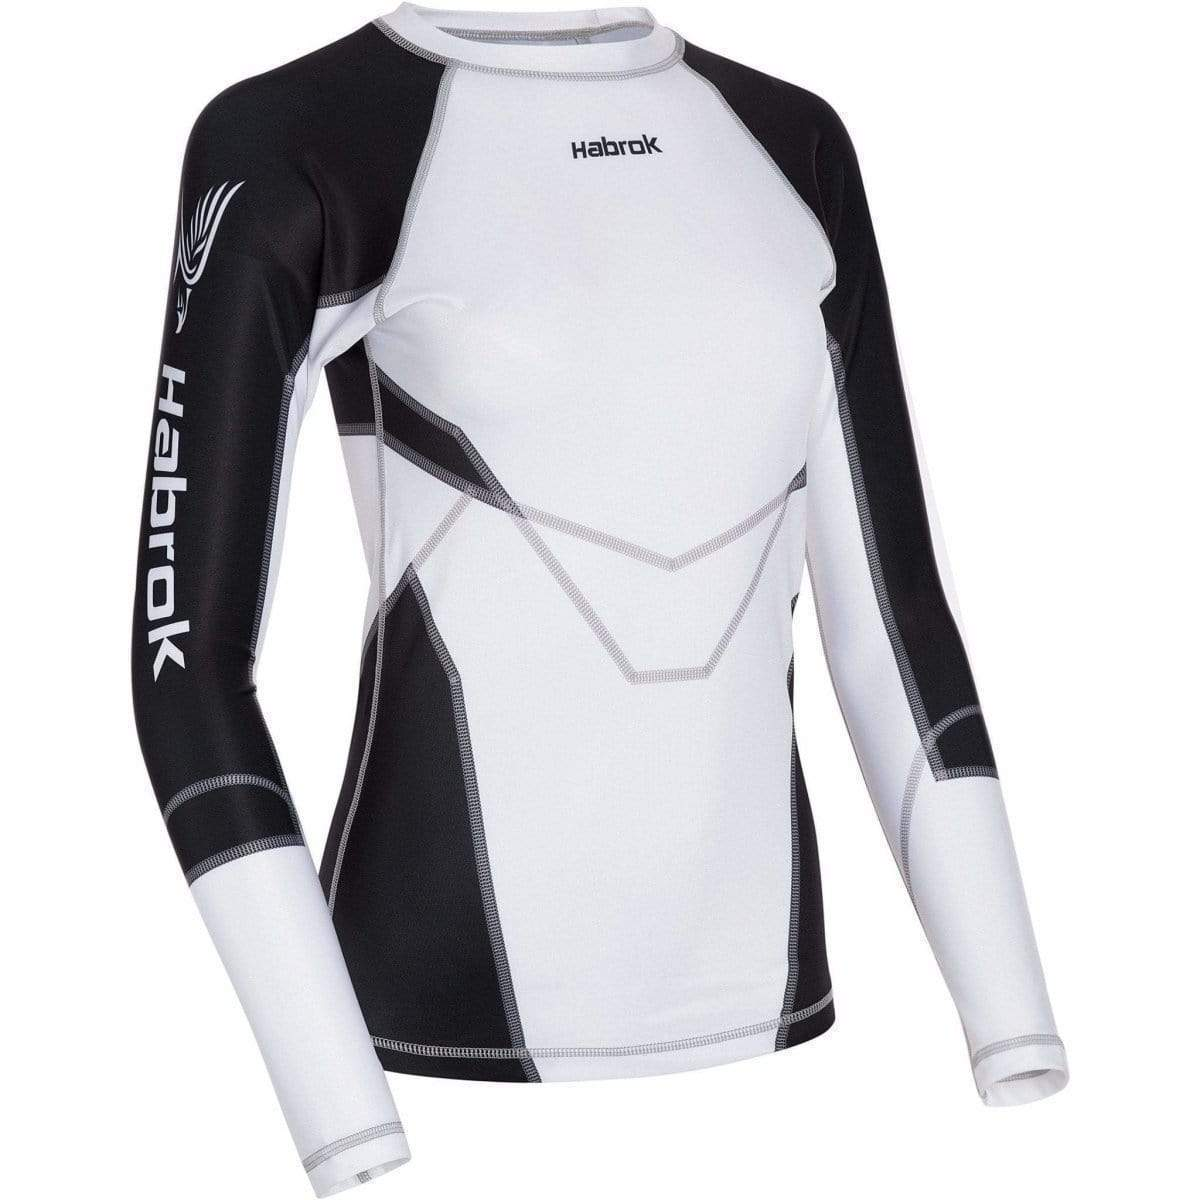 Habrok Rash Guard XS / BLACK Transform 2.5 |Rash Guard Women | Full Sleeve